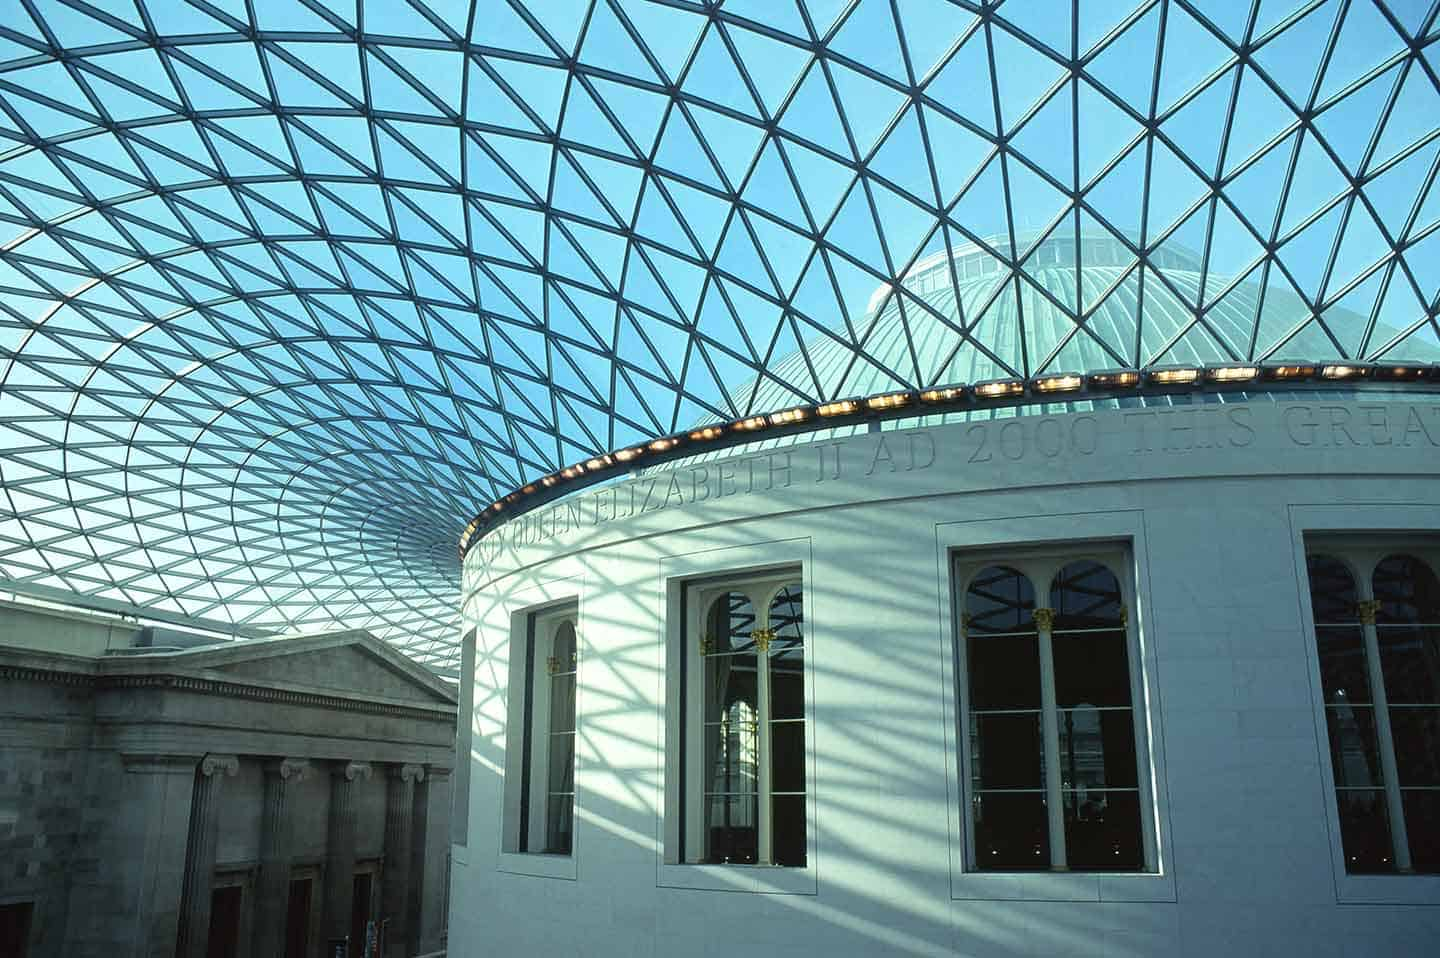 Image of the Great Court at the British Museum, London